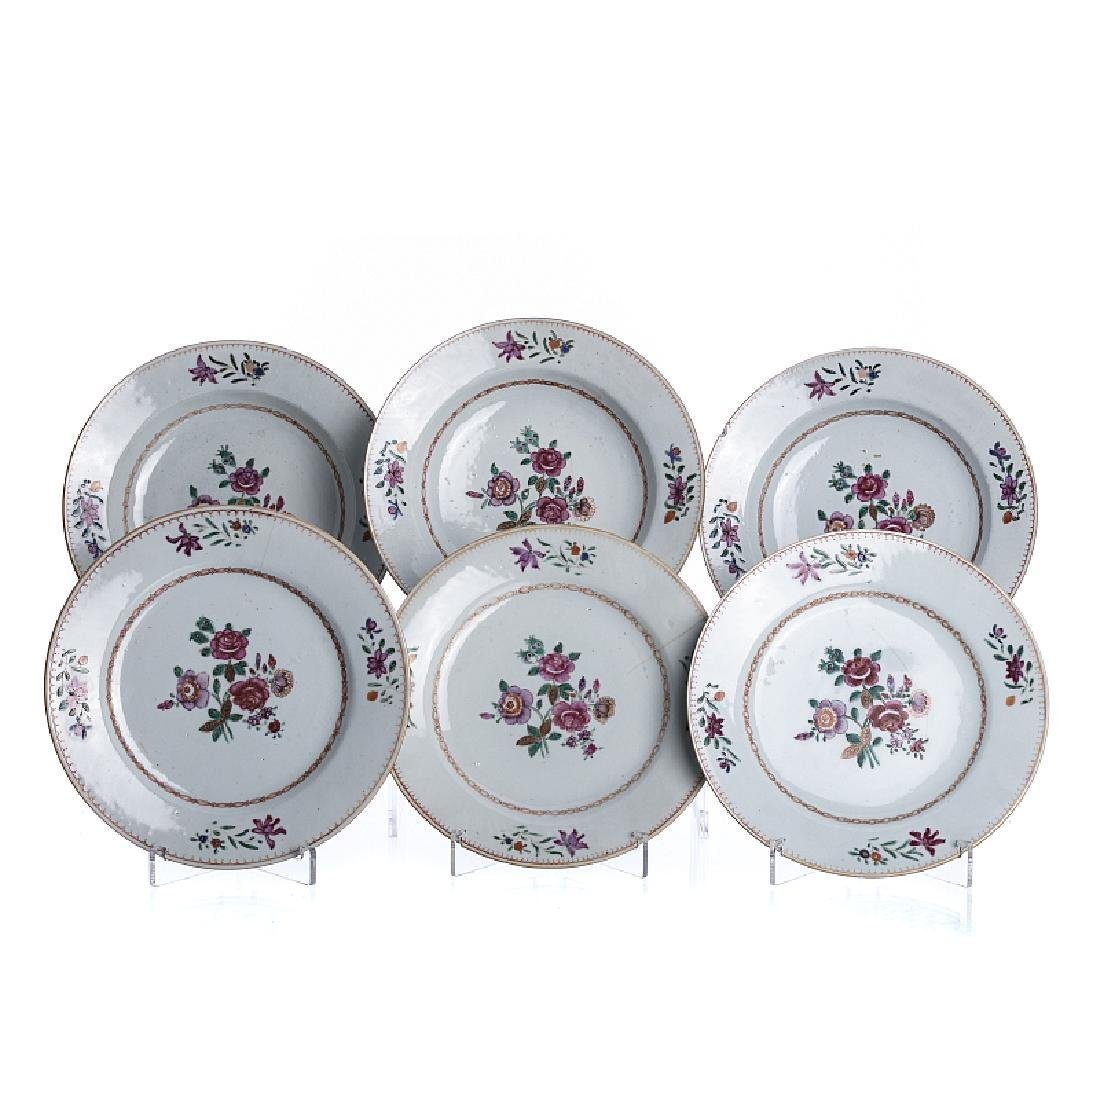 Six plates 'familia rosa' in chinese export porcelain